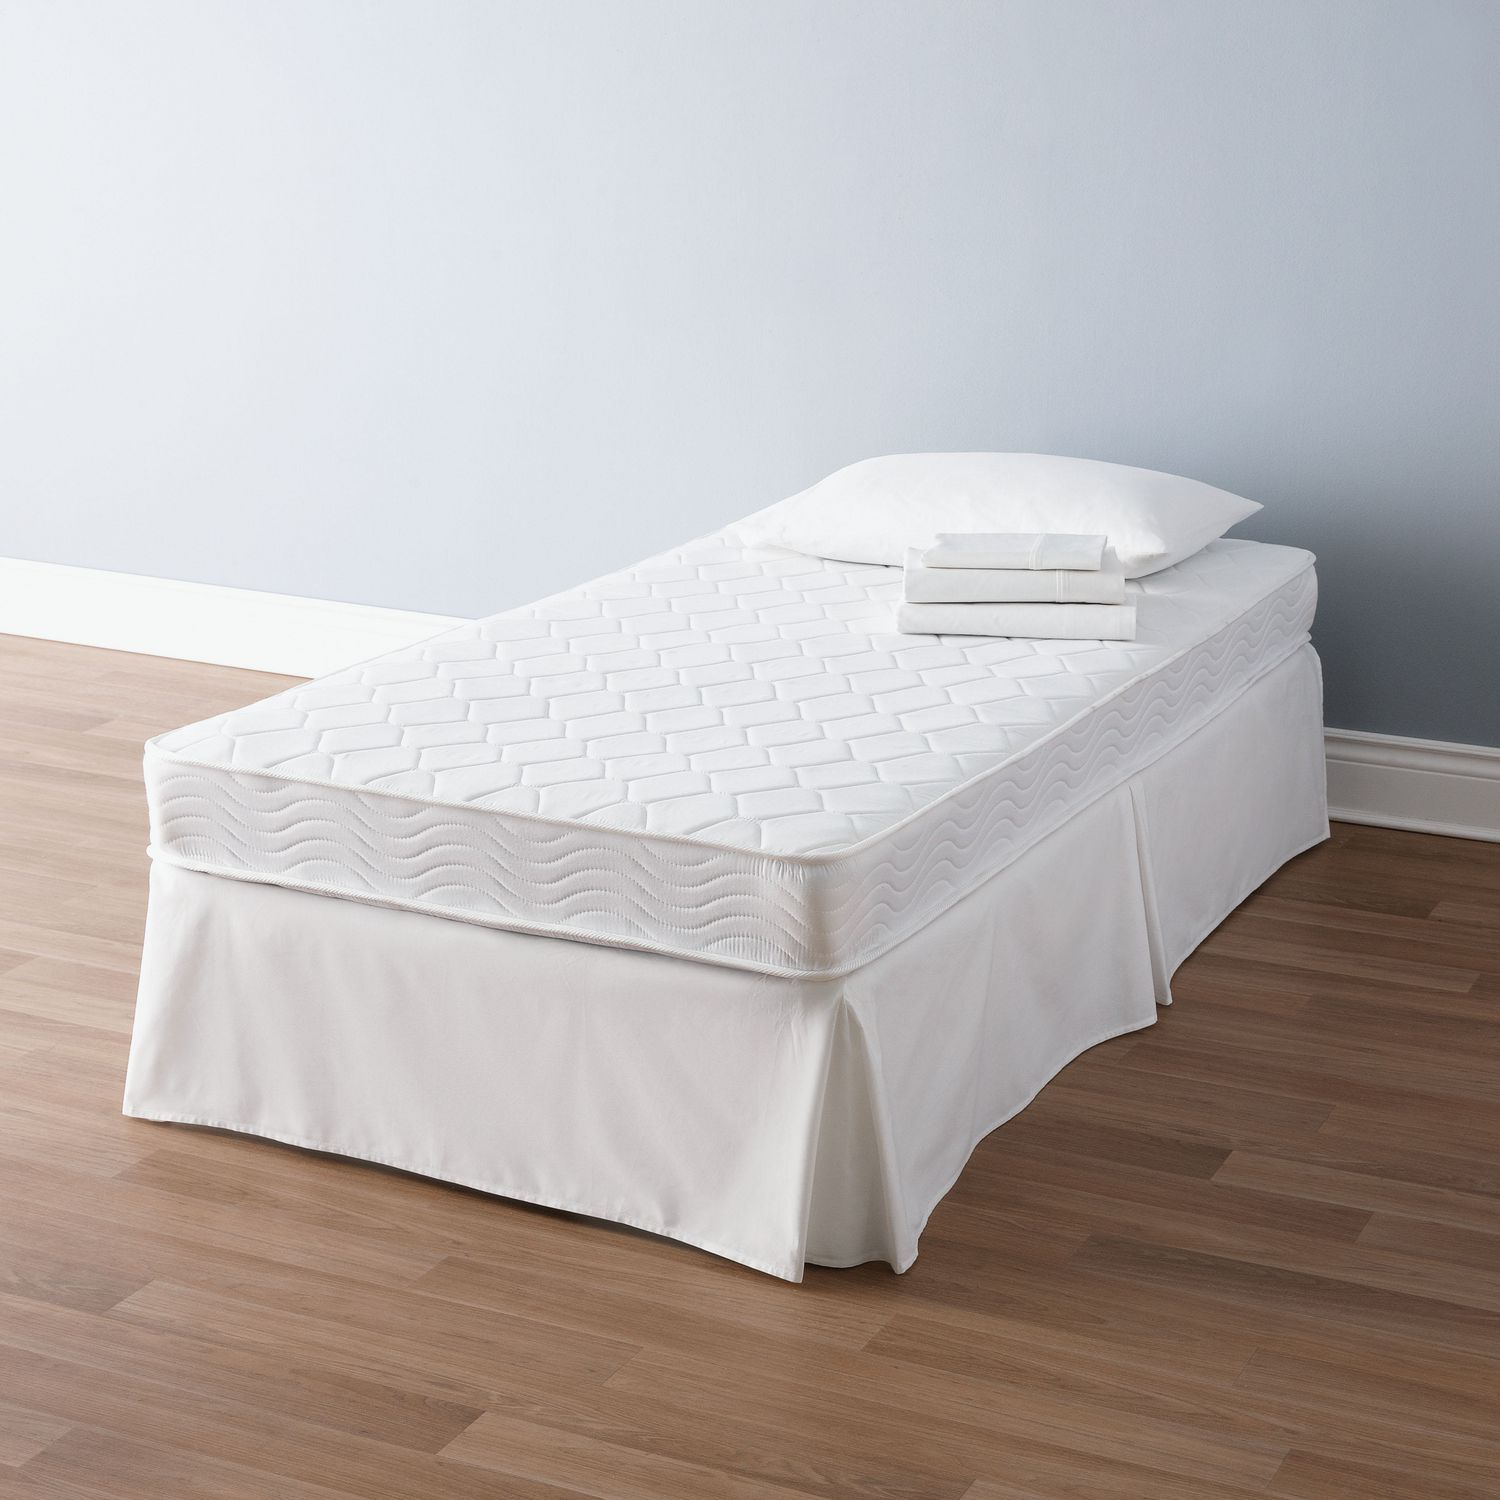 media less sherwood iprotect protector iprotectbed mor image for product furniture mattress